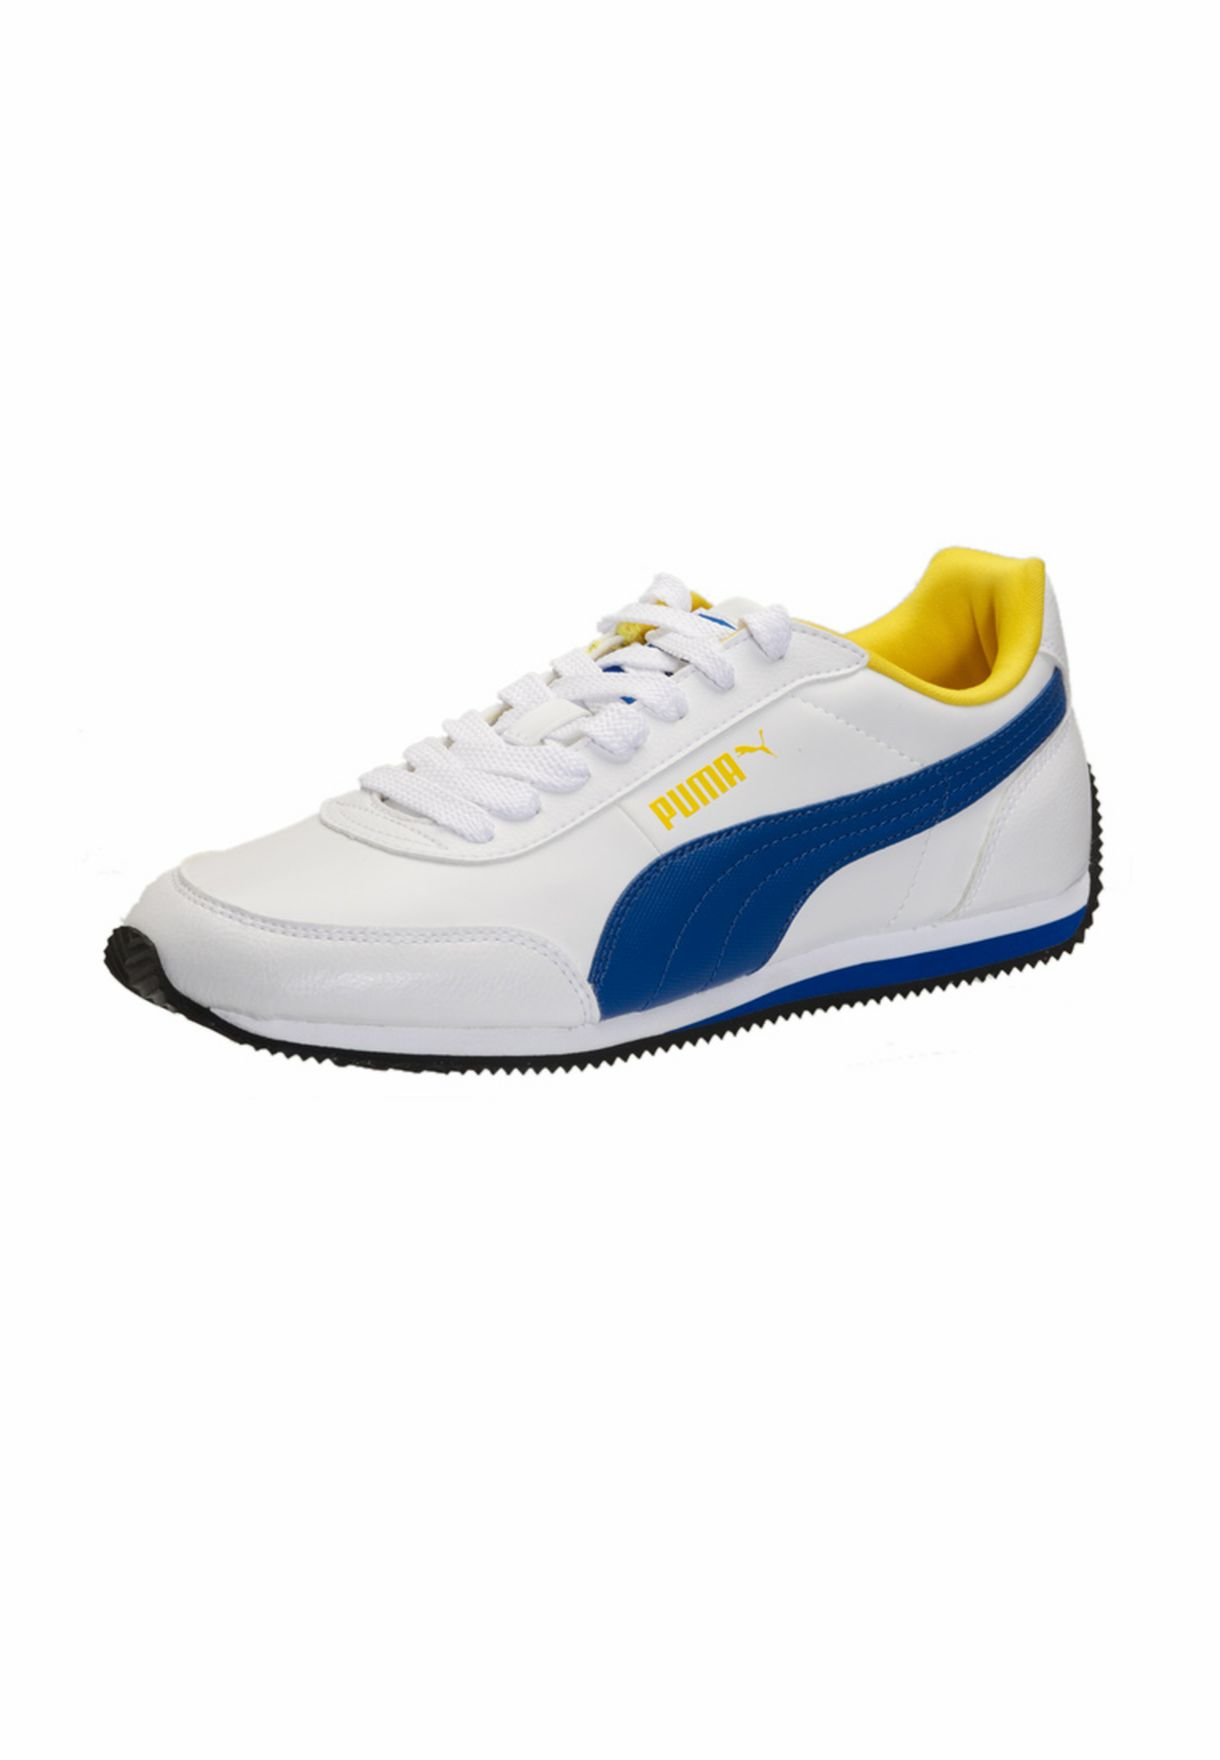 74bf8e500 Shop PUMA white Casual Lowtop Sneakers 35218903 for Men in Kuwait ...